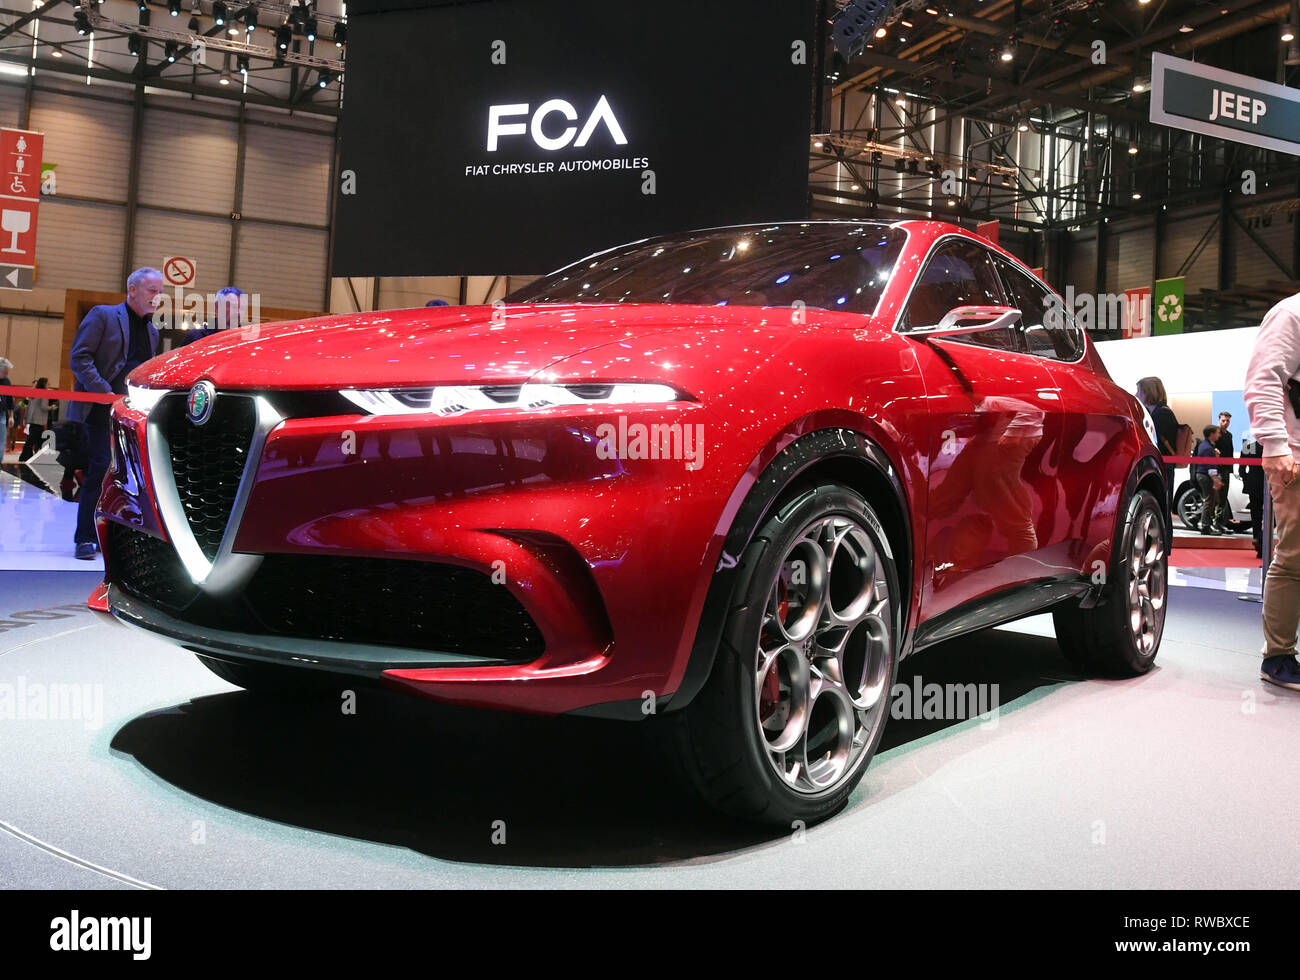 """Genf, Switzerland. 05th Mar, 2019. At the Geneva Motor Show, the Alfa Romeo Tonale will be presented on the first press day. In the background you can see the writing """"FCA Fiat Chrysler Automobiles"""", to which Alfa Romeo belongs. The 89th Geneva Motor Show starts on 7 March and lasts until 17 March. Credit: Uli Deck/dpa/Alamy Live News Stock Photo"""